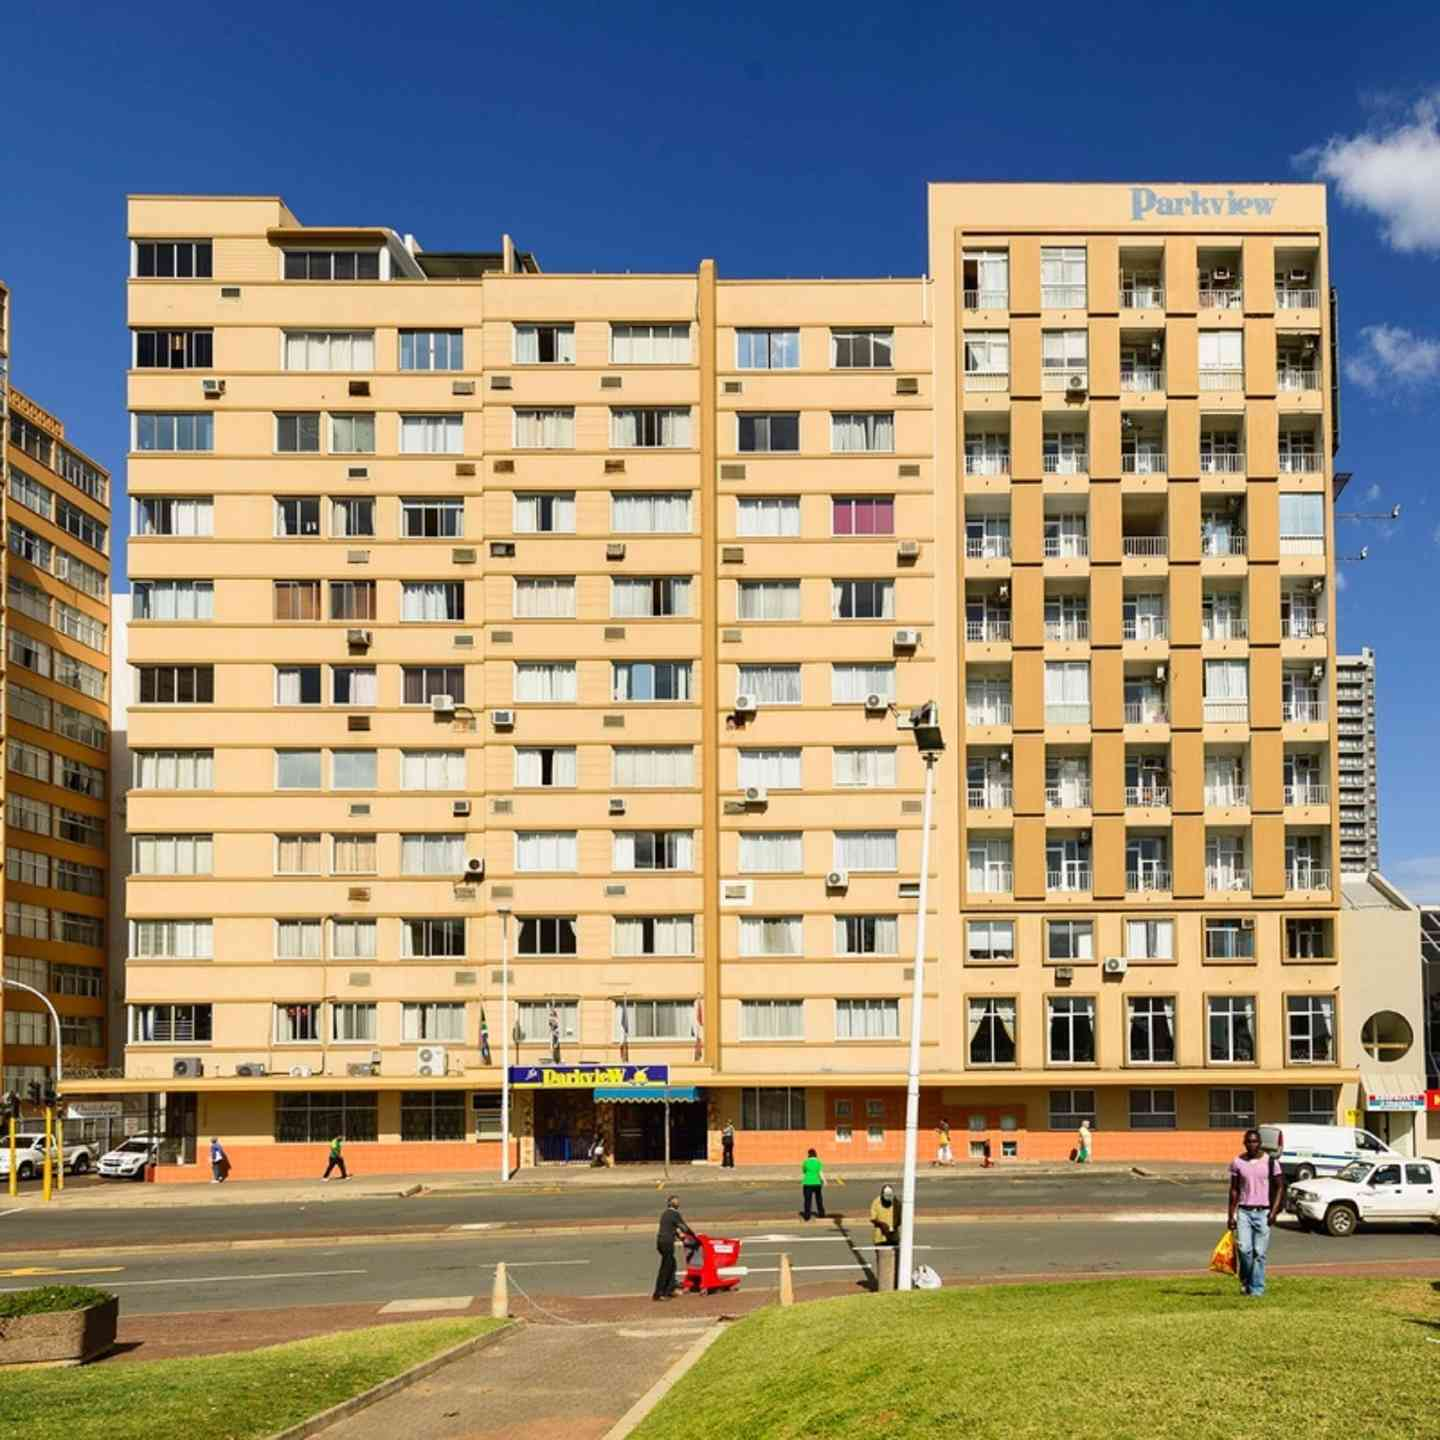 Holiday Park Apartments: Parkview Holiday Apartments, Durban, South Africa